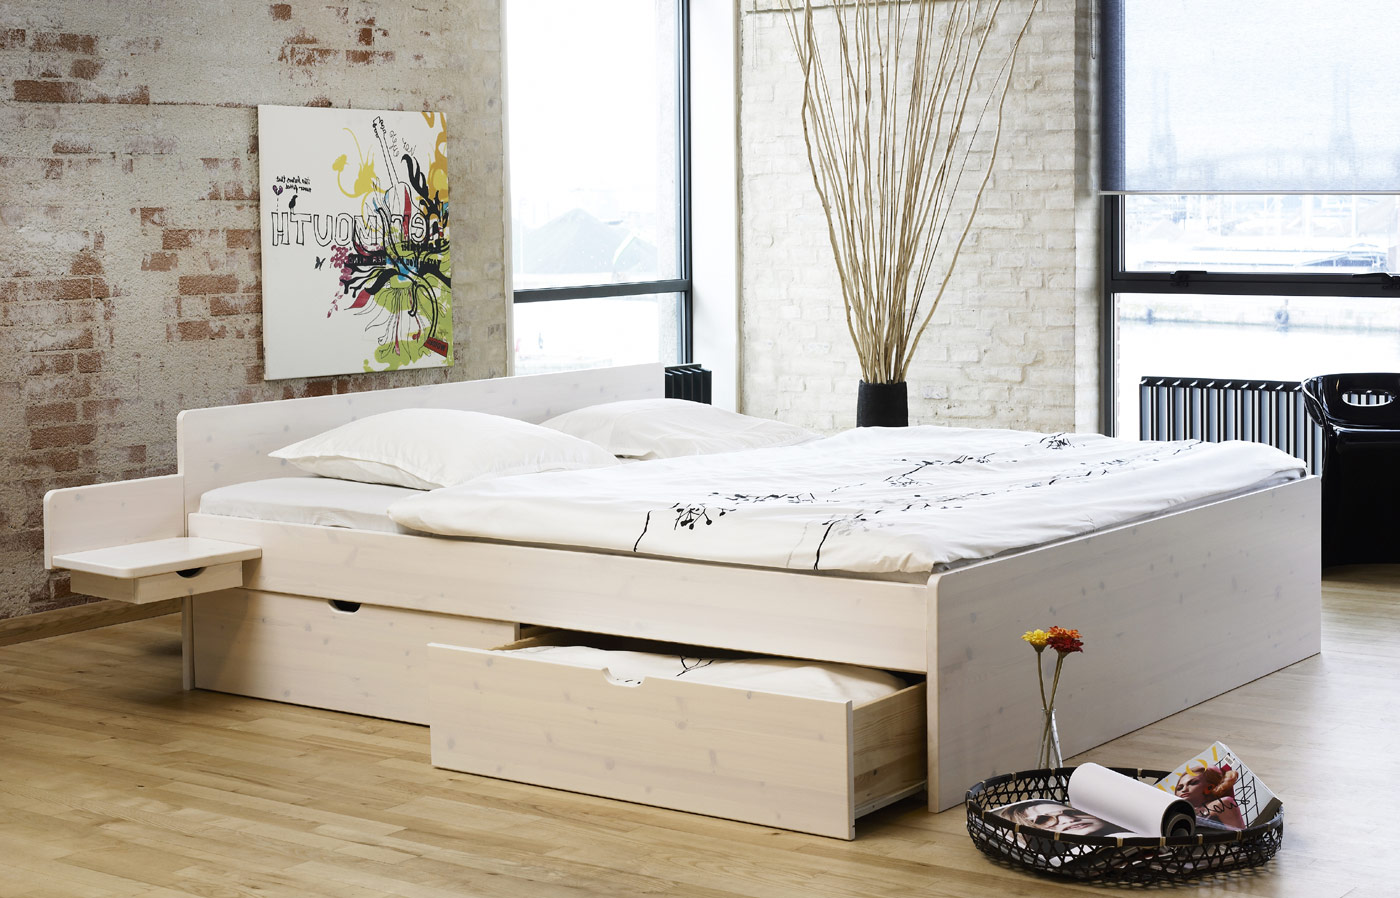 einzelbett mit stauraum. Black Bedroom Furniture Sets. Home Design Ideas